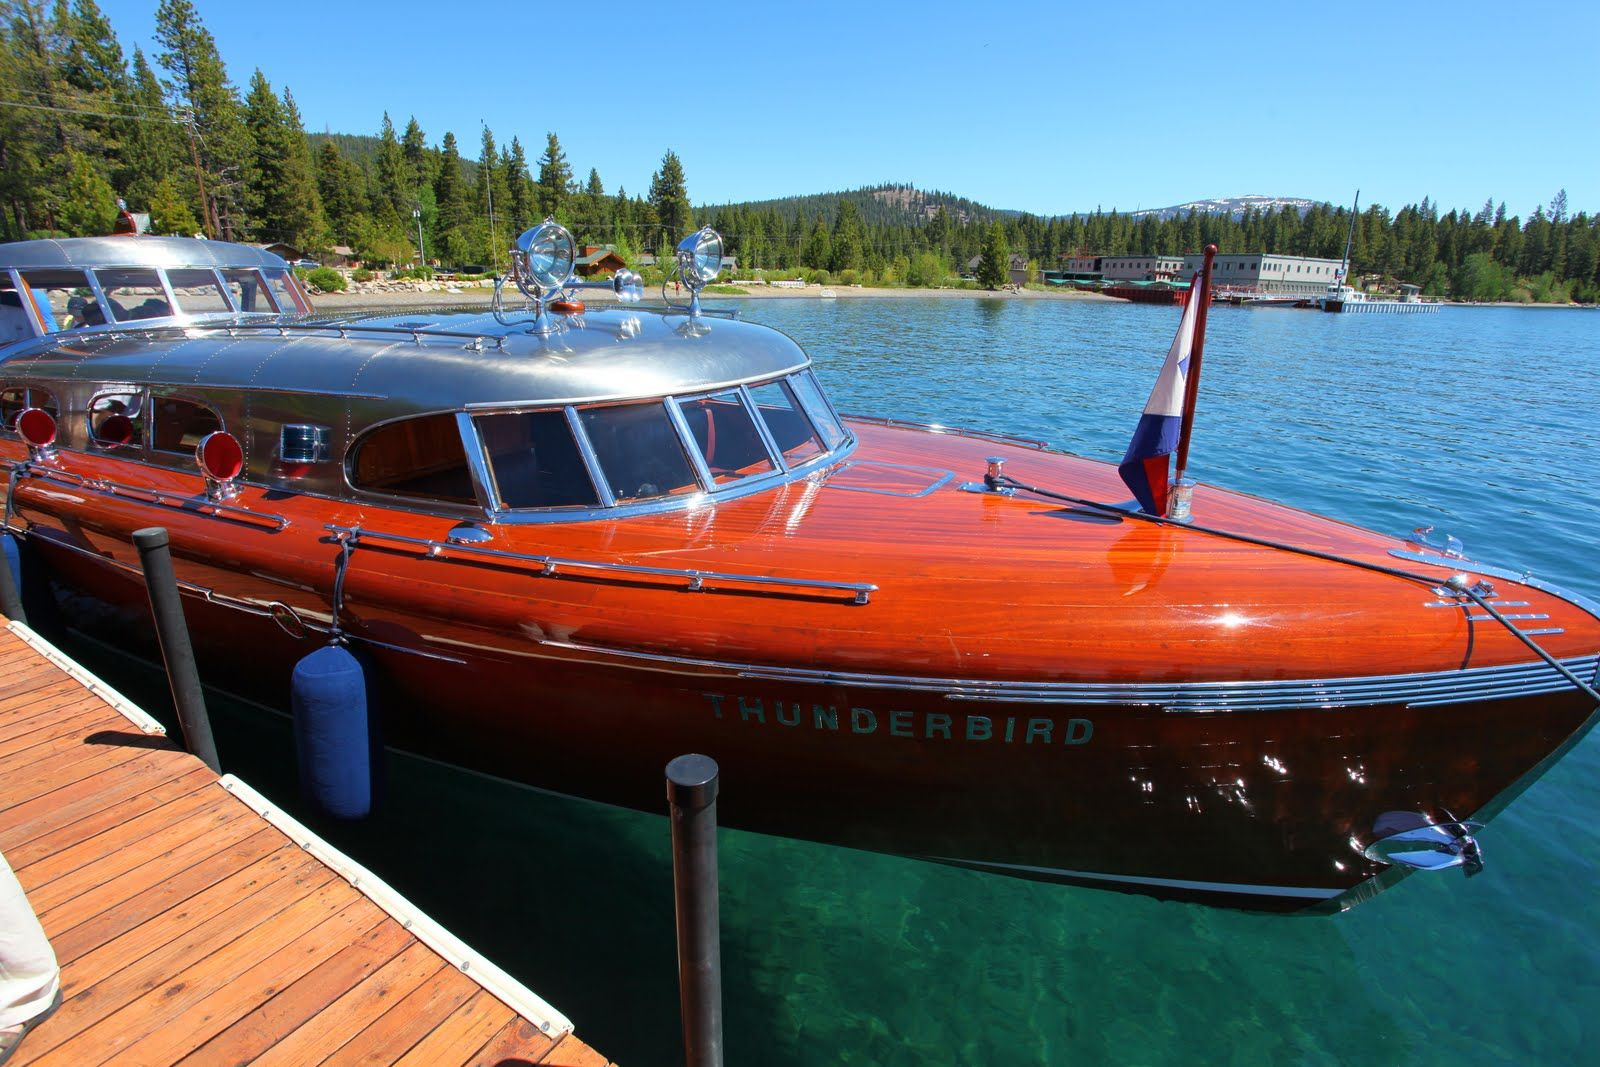 wood boats are the best | Wood boats, Wooden speed boats ...